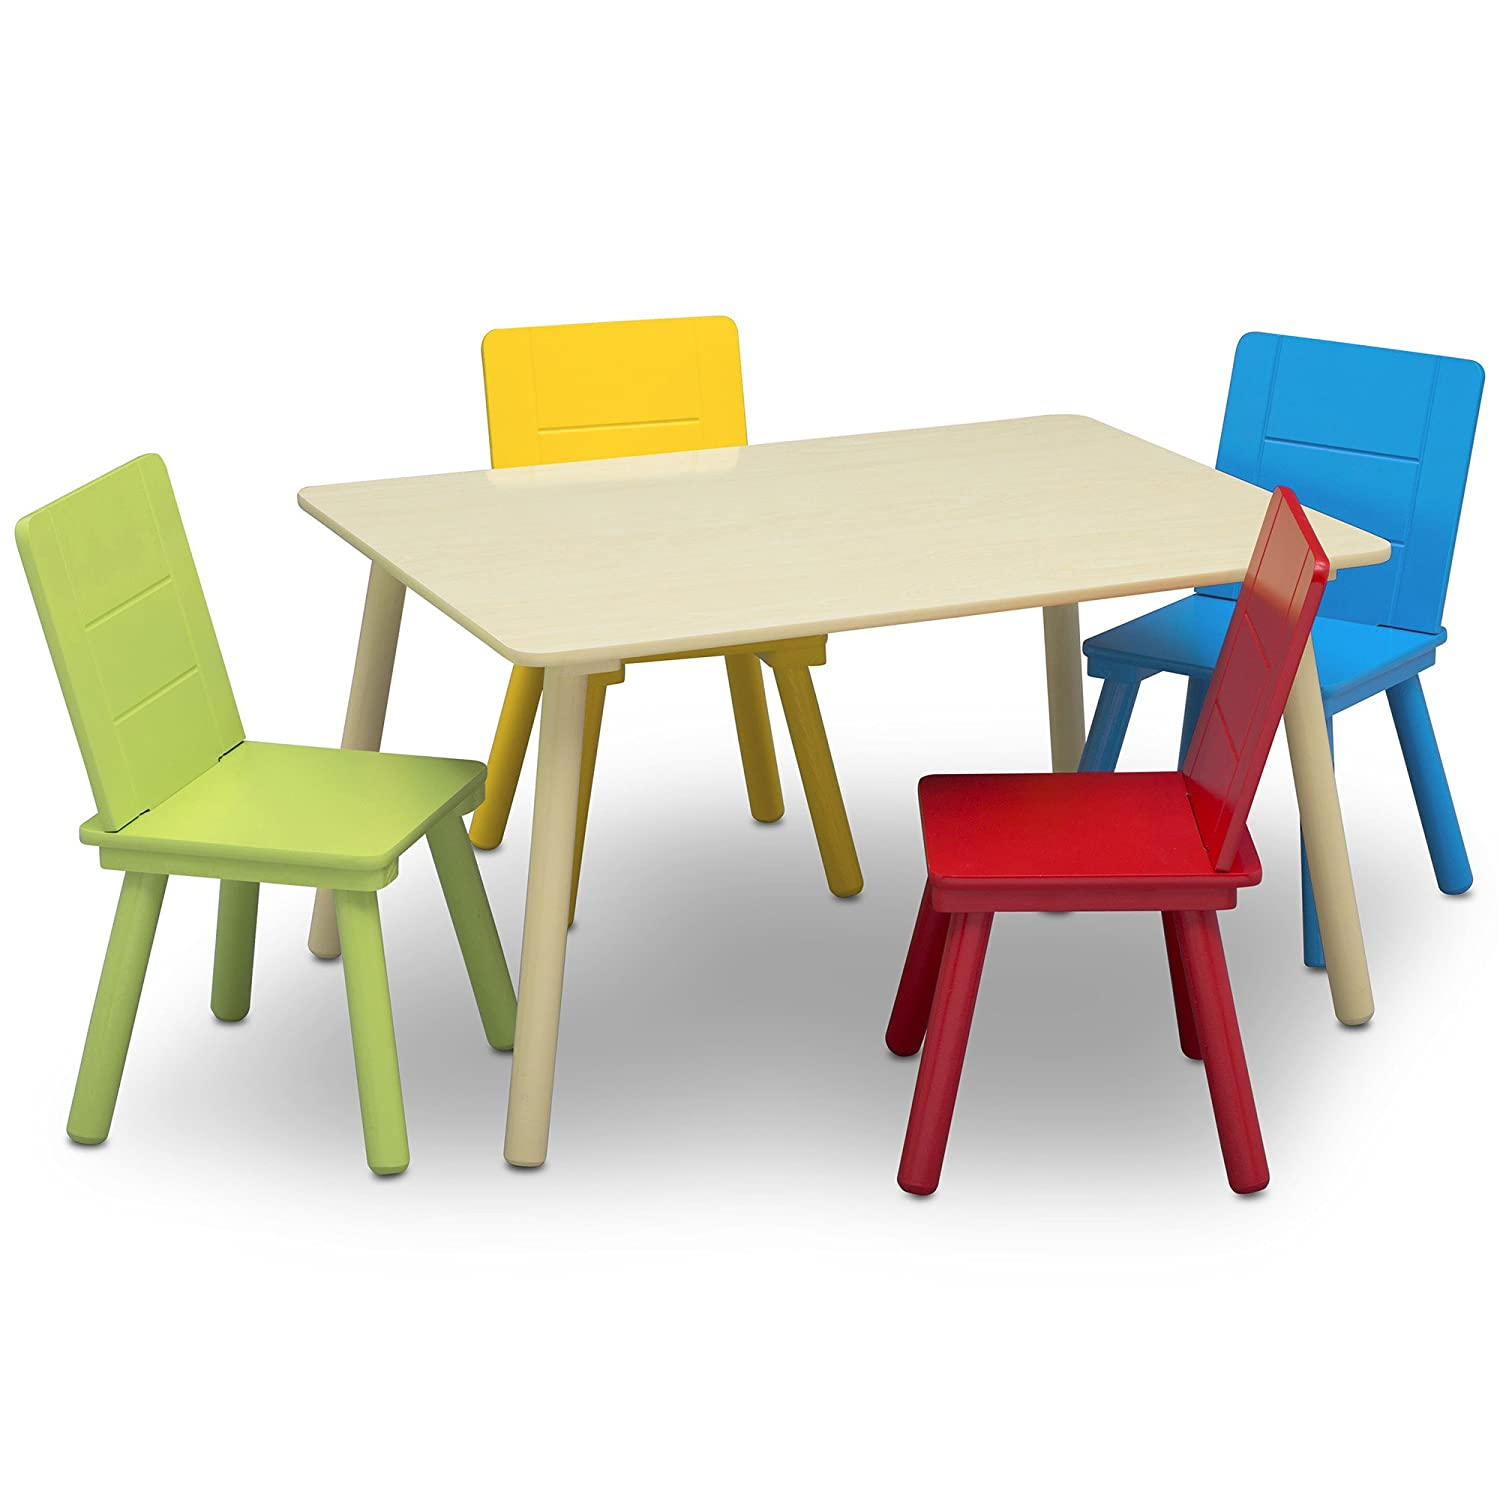 Super Details About Delta Children Kids Chair Set And Table 4 Chairs Included Frankydiablos Diy Chair Ideas Frankydiabloscom